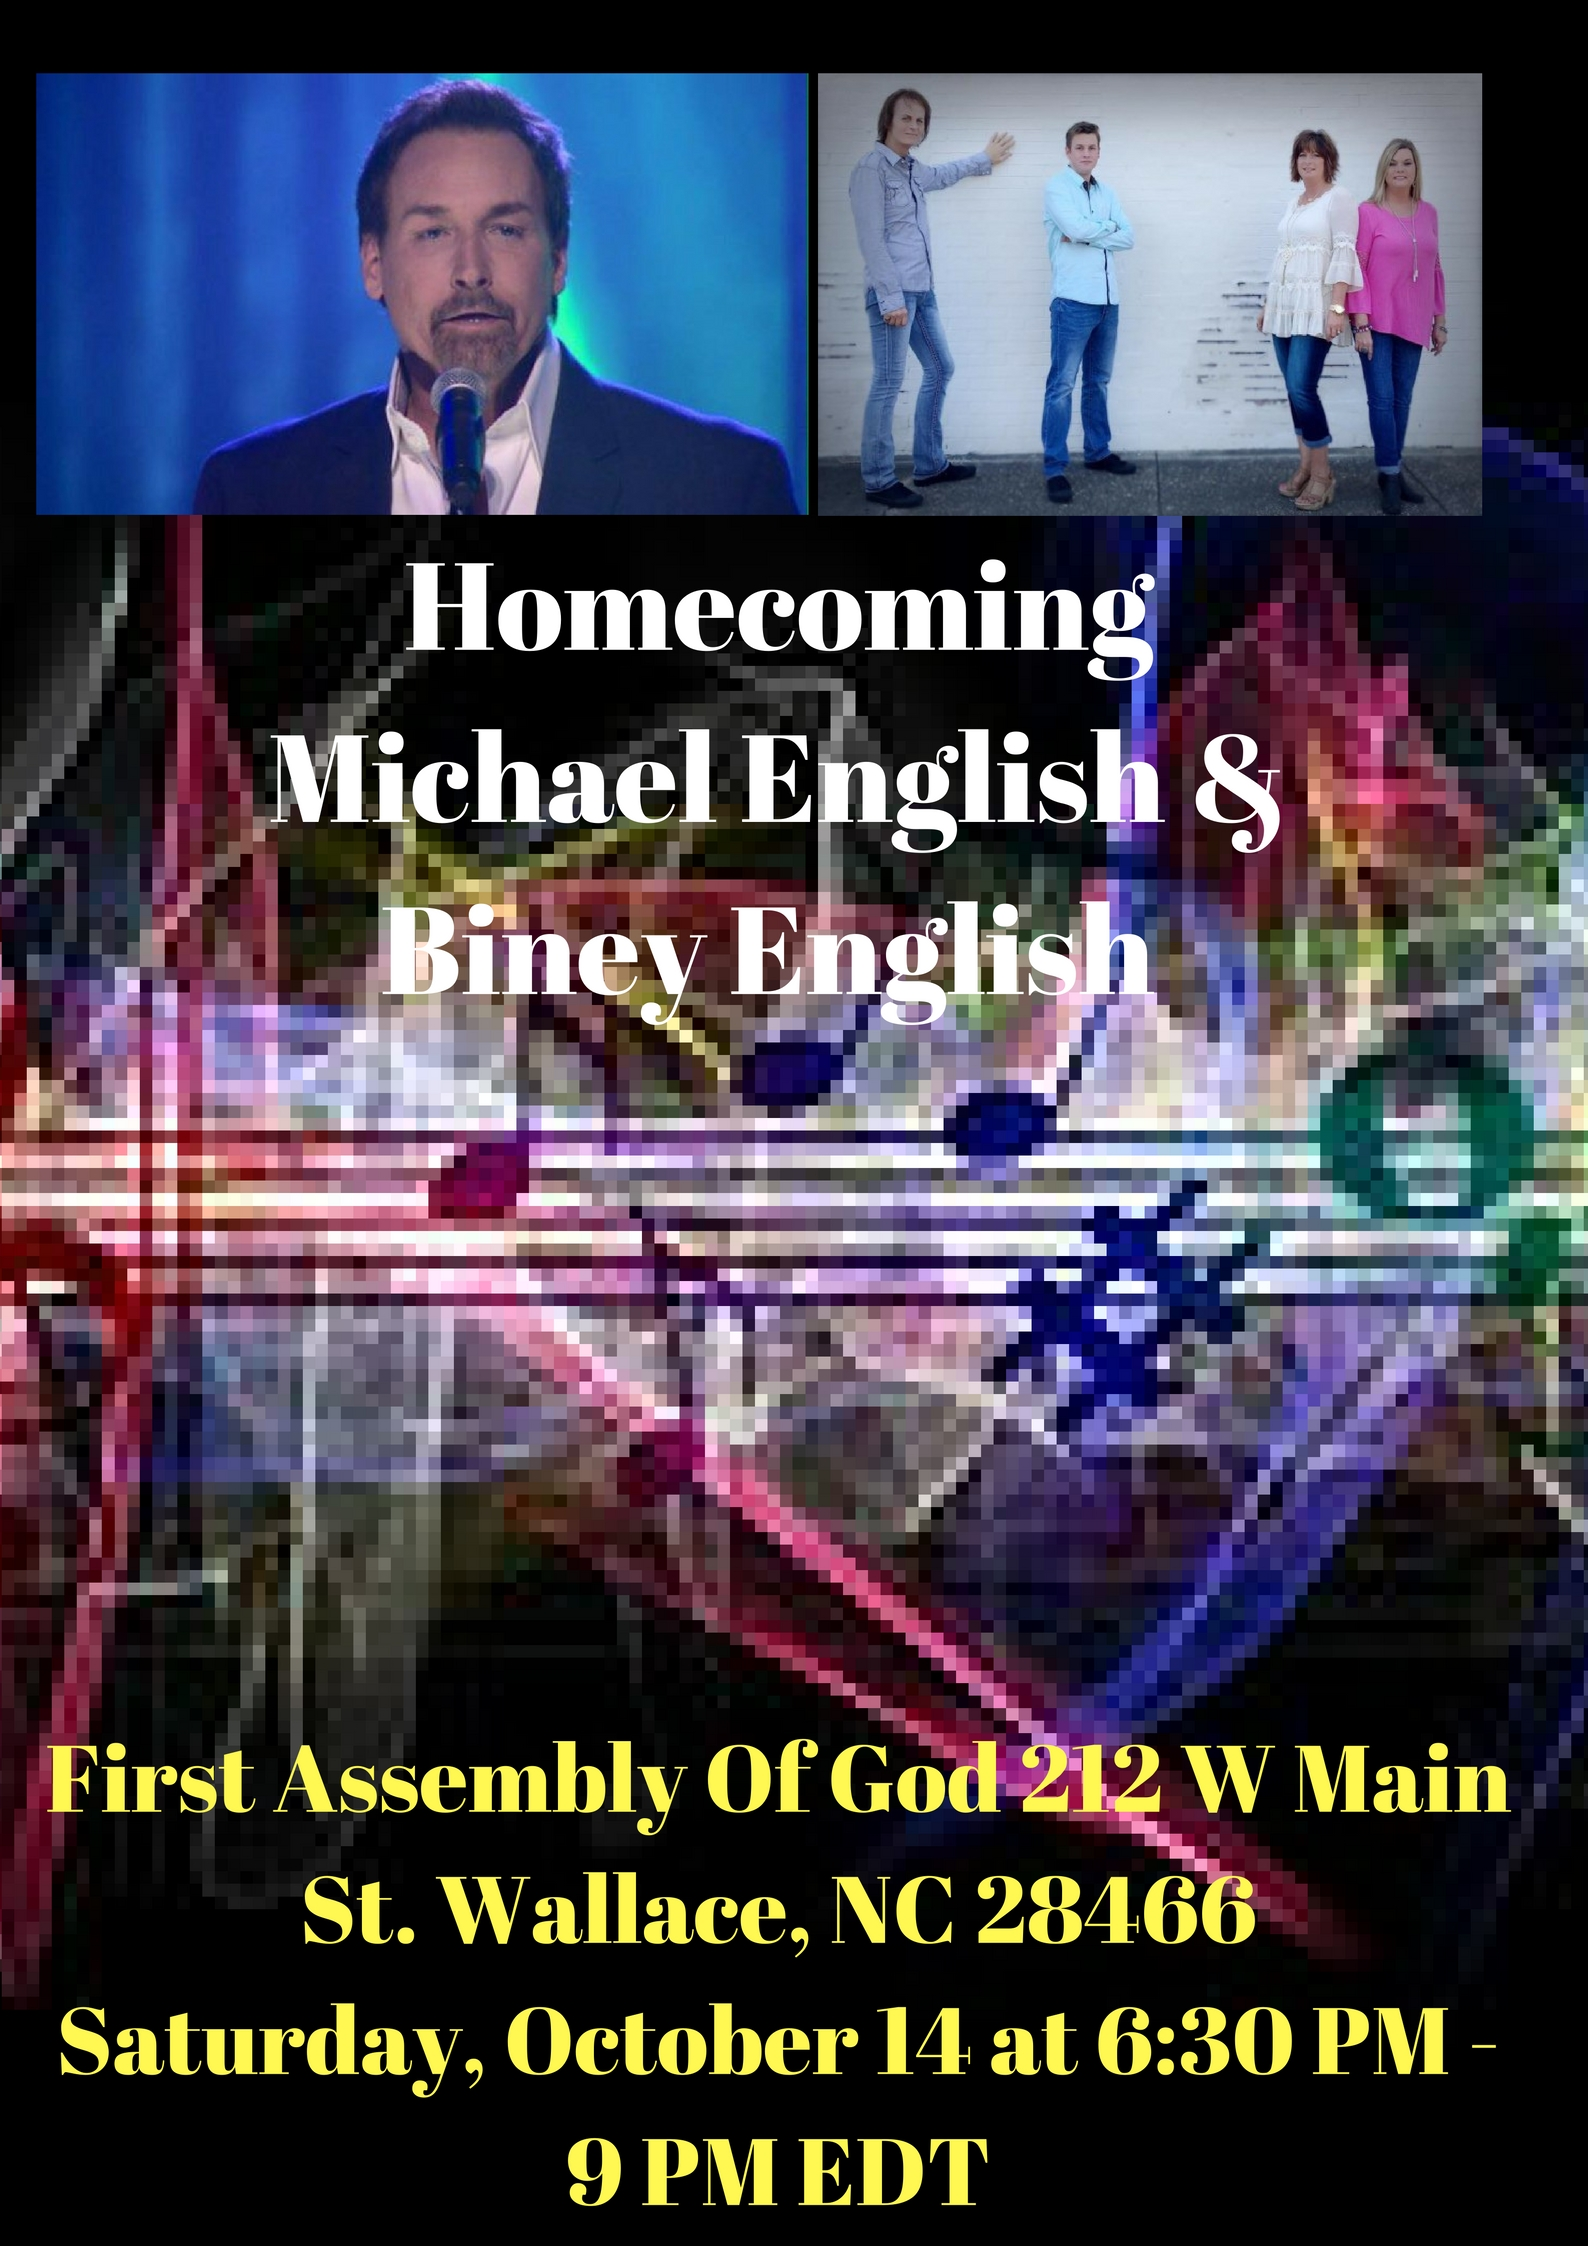 Welcome to Second Assembly of God